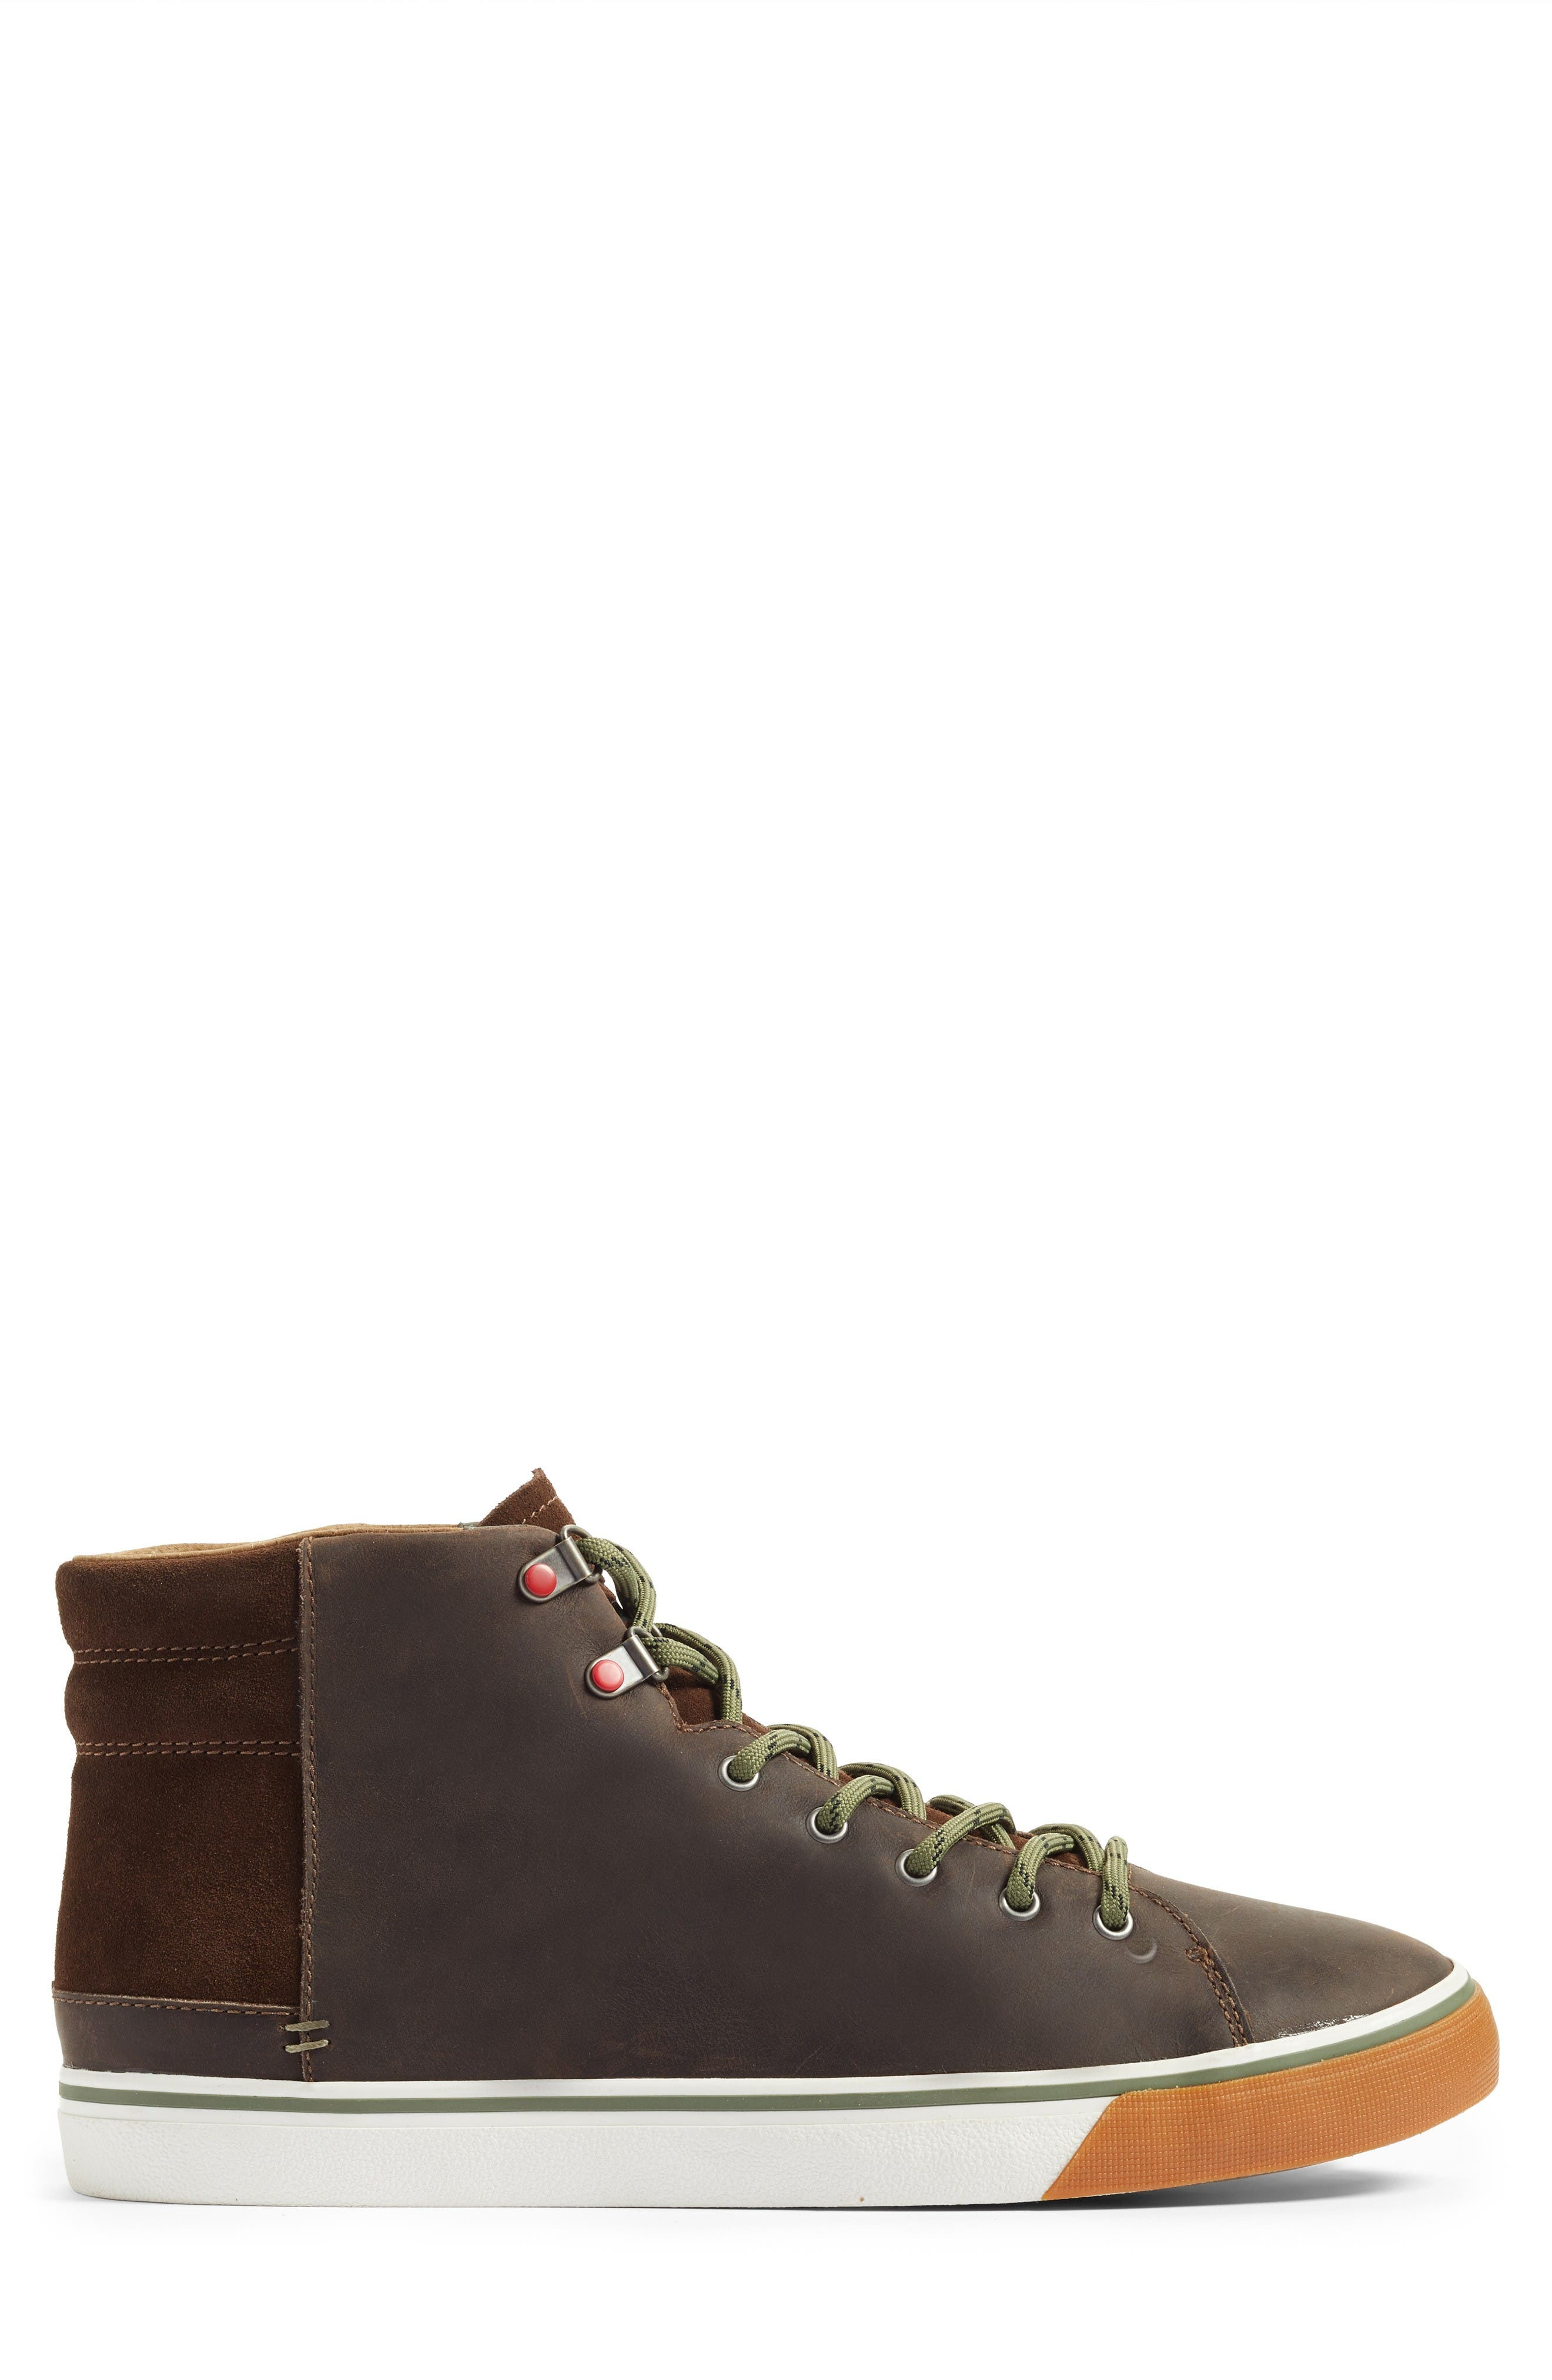 Hoyt High Top Sneaker,                             Alternate thumbnail 3, color,                             Grizzly